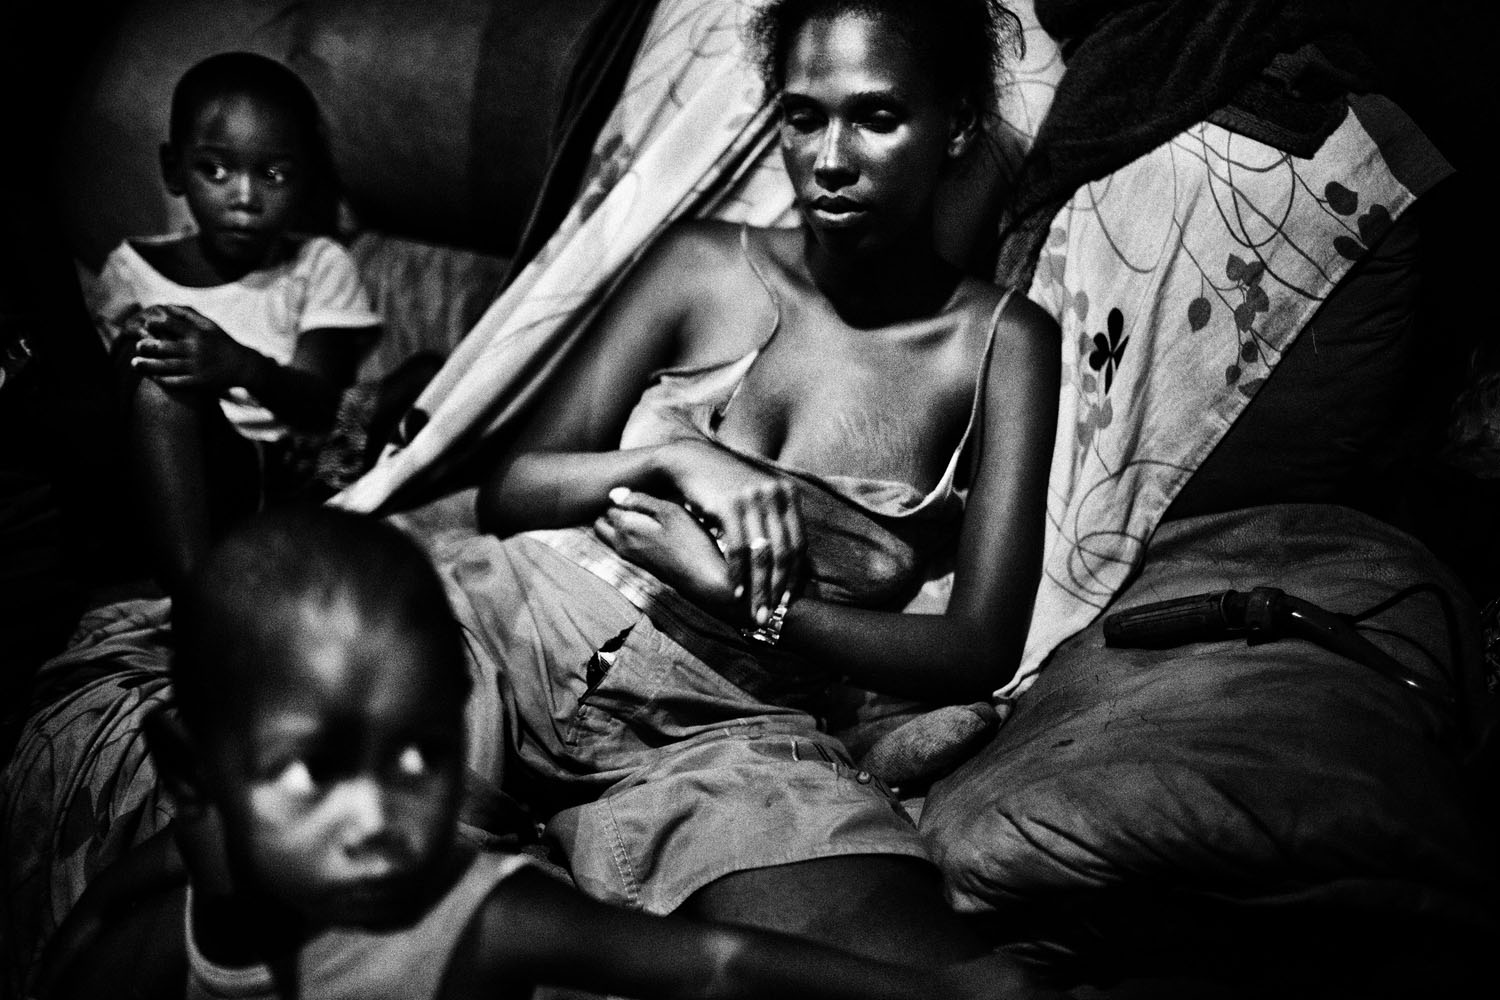 Melanie, 22, with her two sons in a small shack in an abandonated chocolate factory in Salvador de Bahia, Brazil. In spite of the extreme conditions in which they live, this factory ruin has become a home for the family. May 22, 2010.